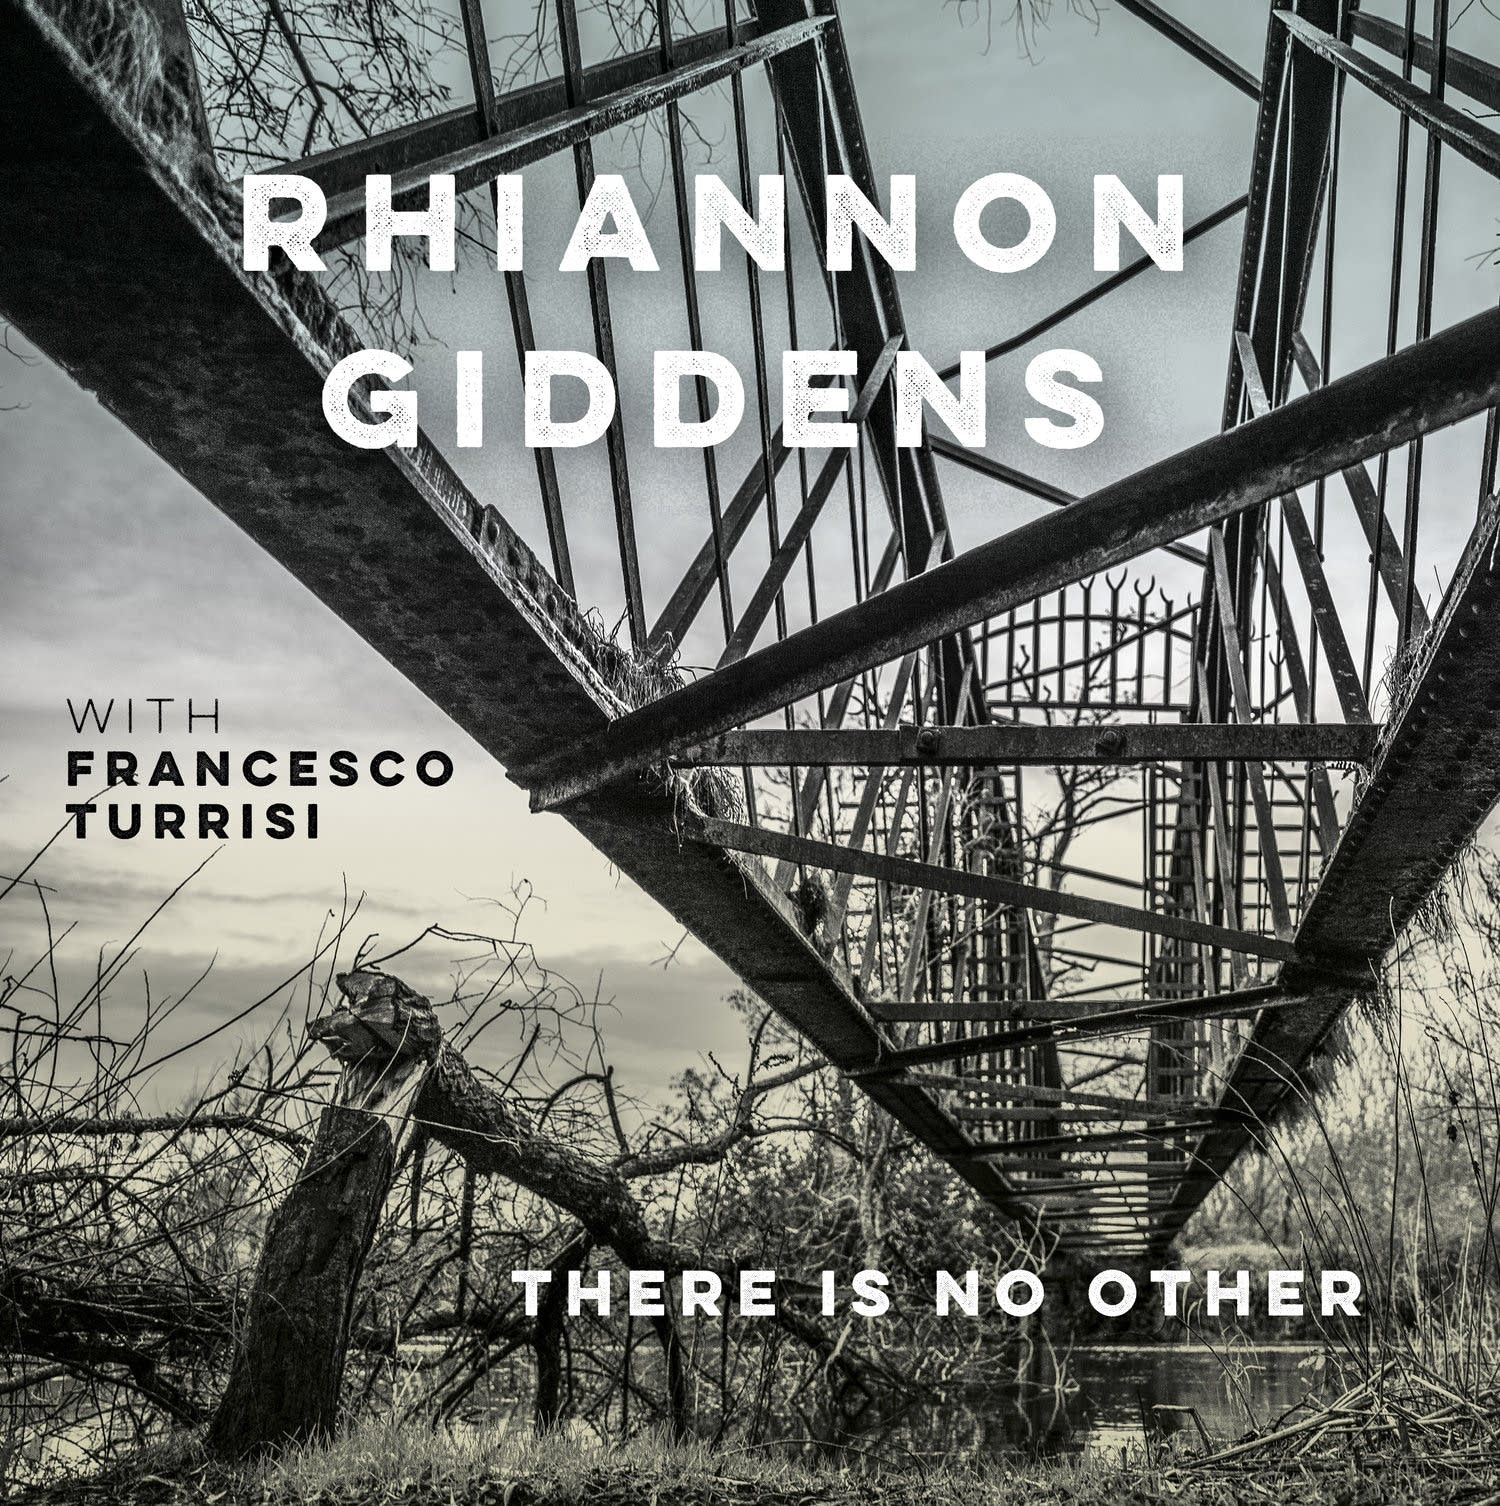 Rhiannon Giddens with Francesco Turrisi, 'There Is No Other'